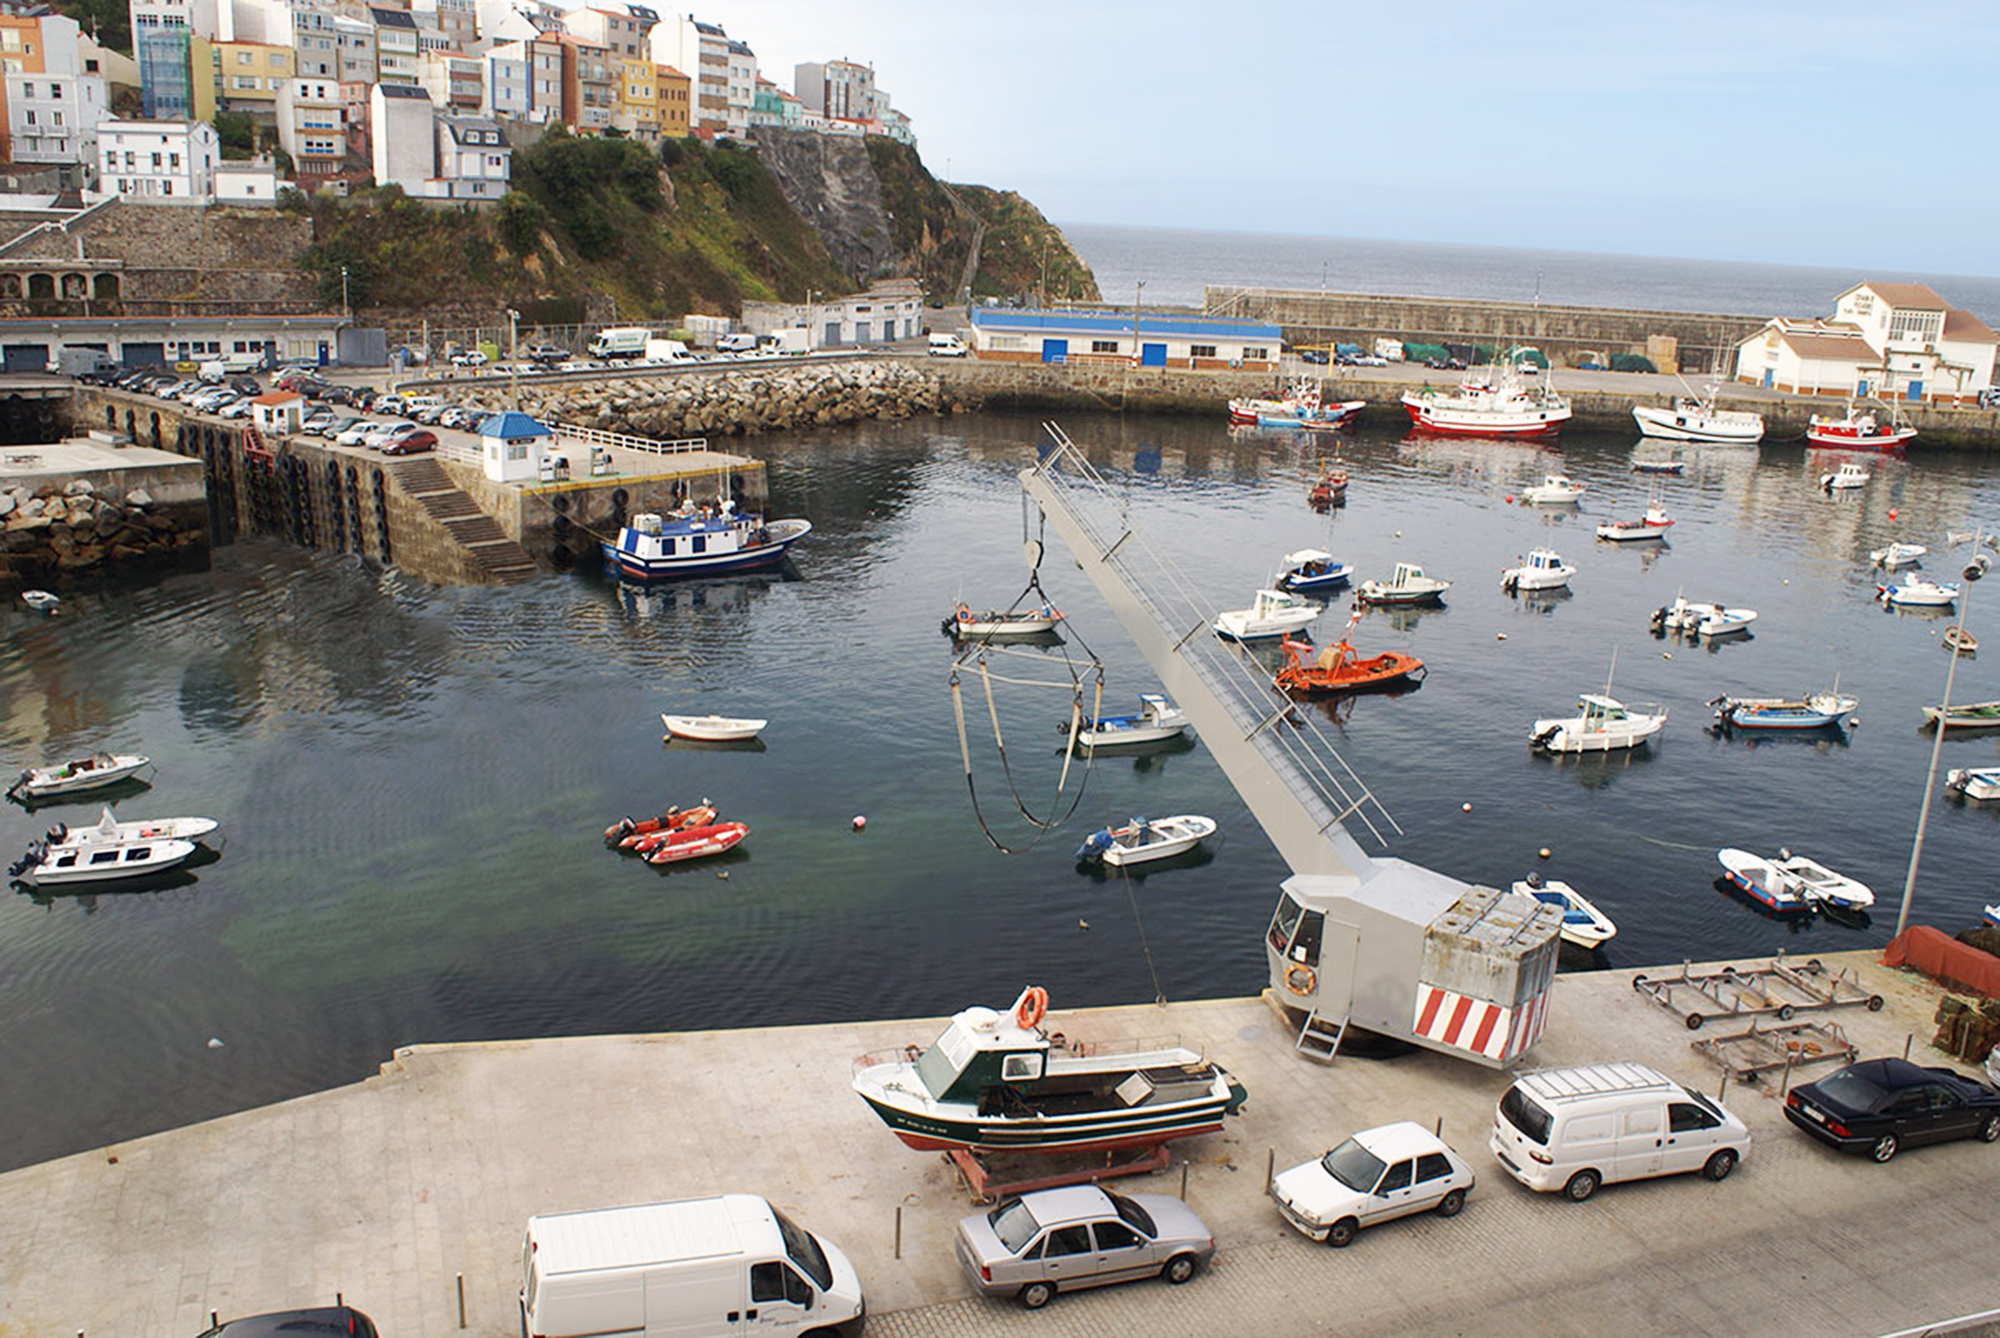 Malpica port now has a safe and reliable piping system thanks to KPS